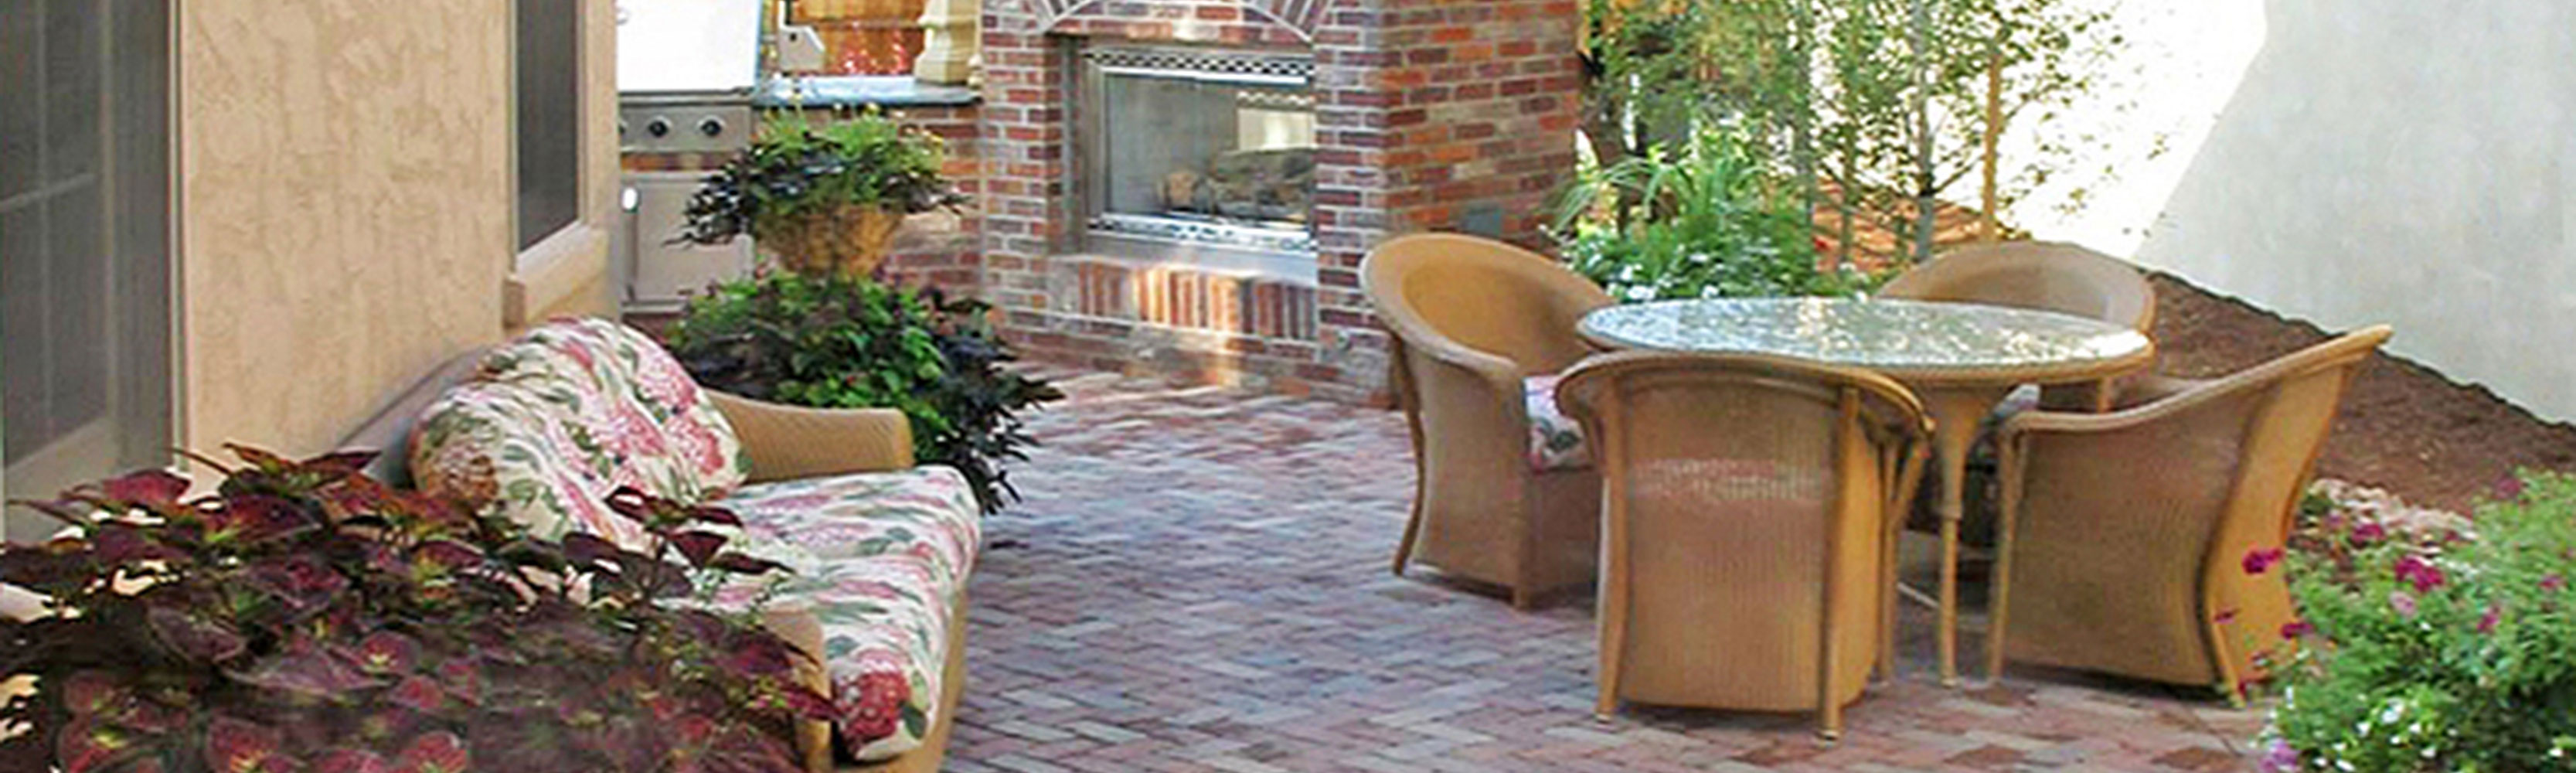 Our Stylish Paving Brick Can Help Make Your Landscape Warm And Inviting Offering Durability Great Looks A Wide Variety Of Lasting Colors